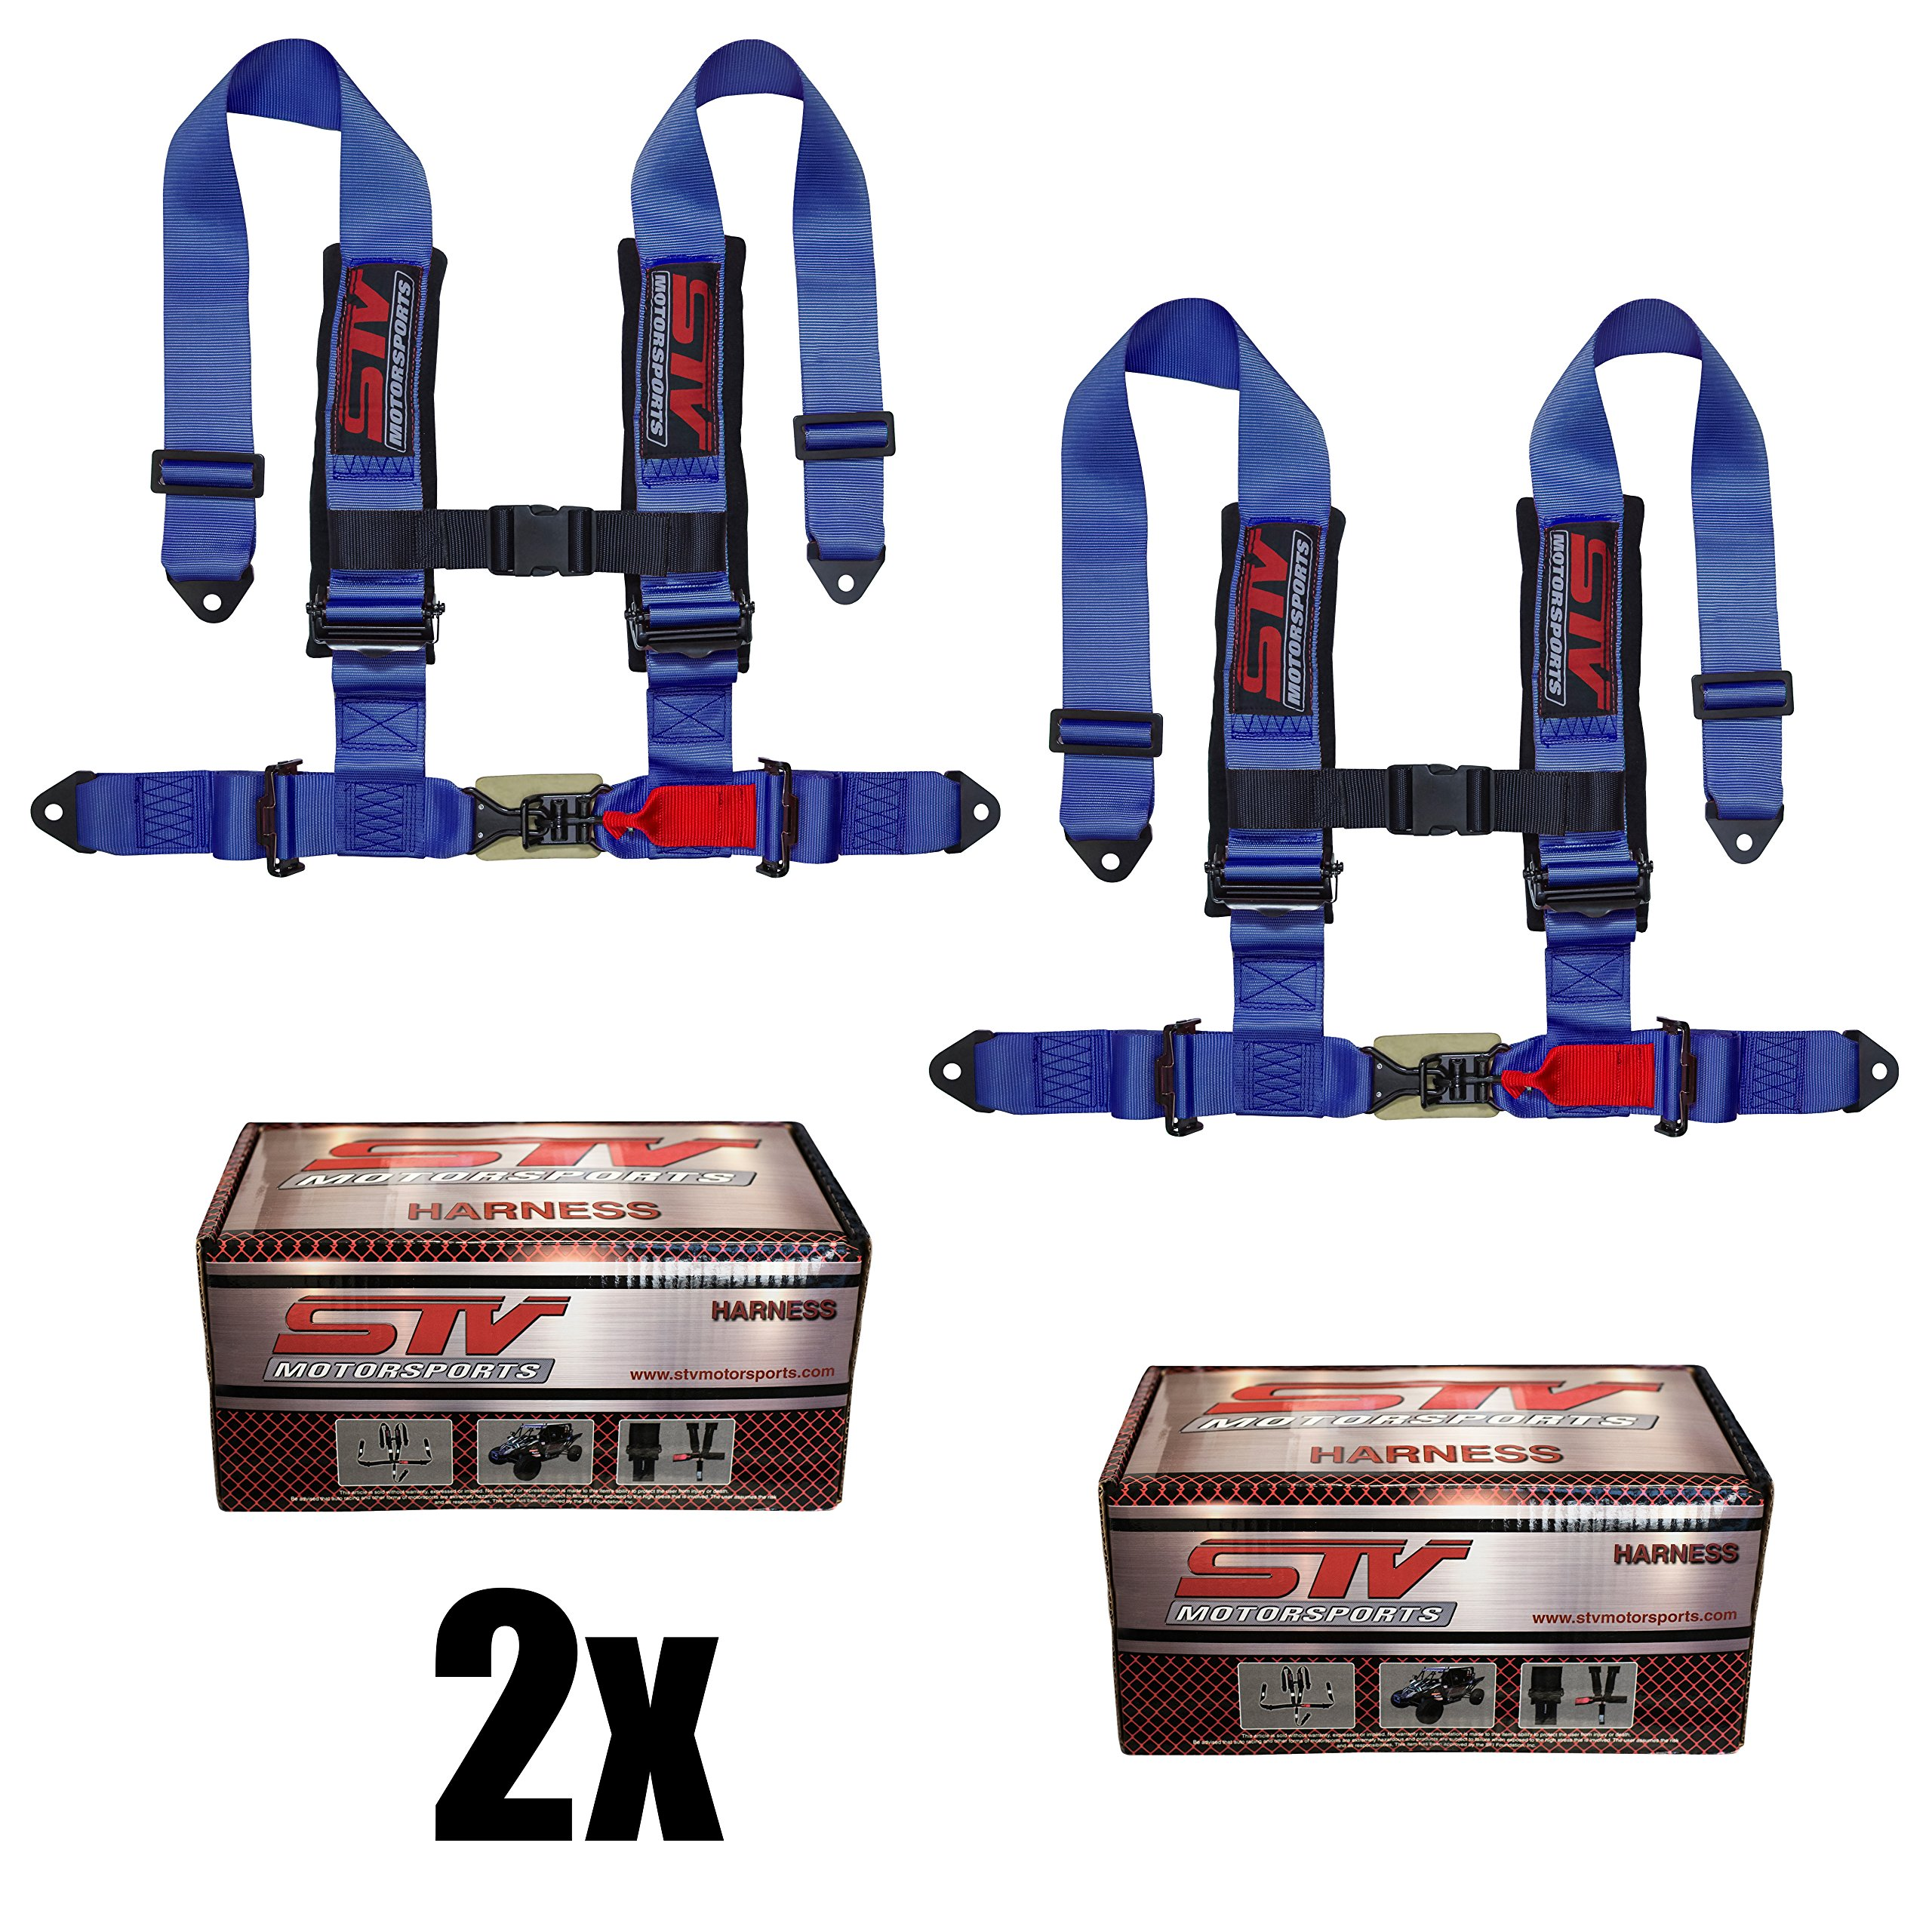 """STVMotorsports 4 Point Harness Set - 3"""" Pads - Universal H-Type - Bolt In - Latch and Link Quick Release - for Off-Road, UTV, Trucks, Side by Side (PAIR) (Blue)"""